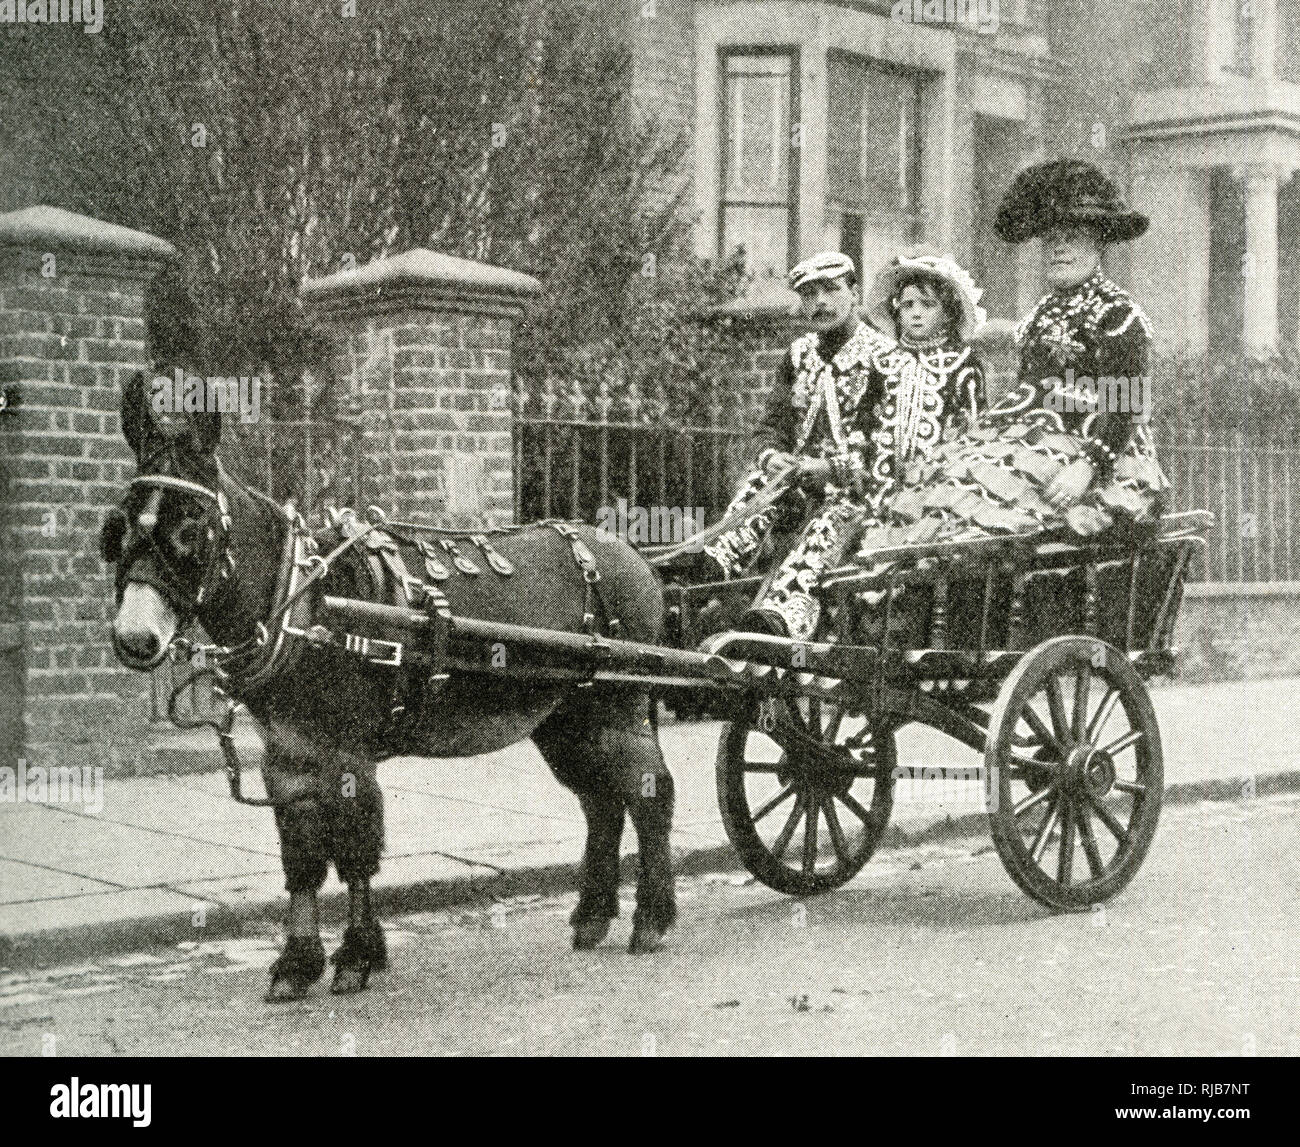 Pearly King, Pearly Queen and daughter, riding in a cart drawn by a mule, North London. Stock Photo